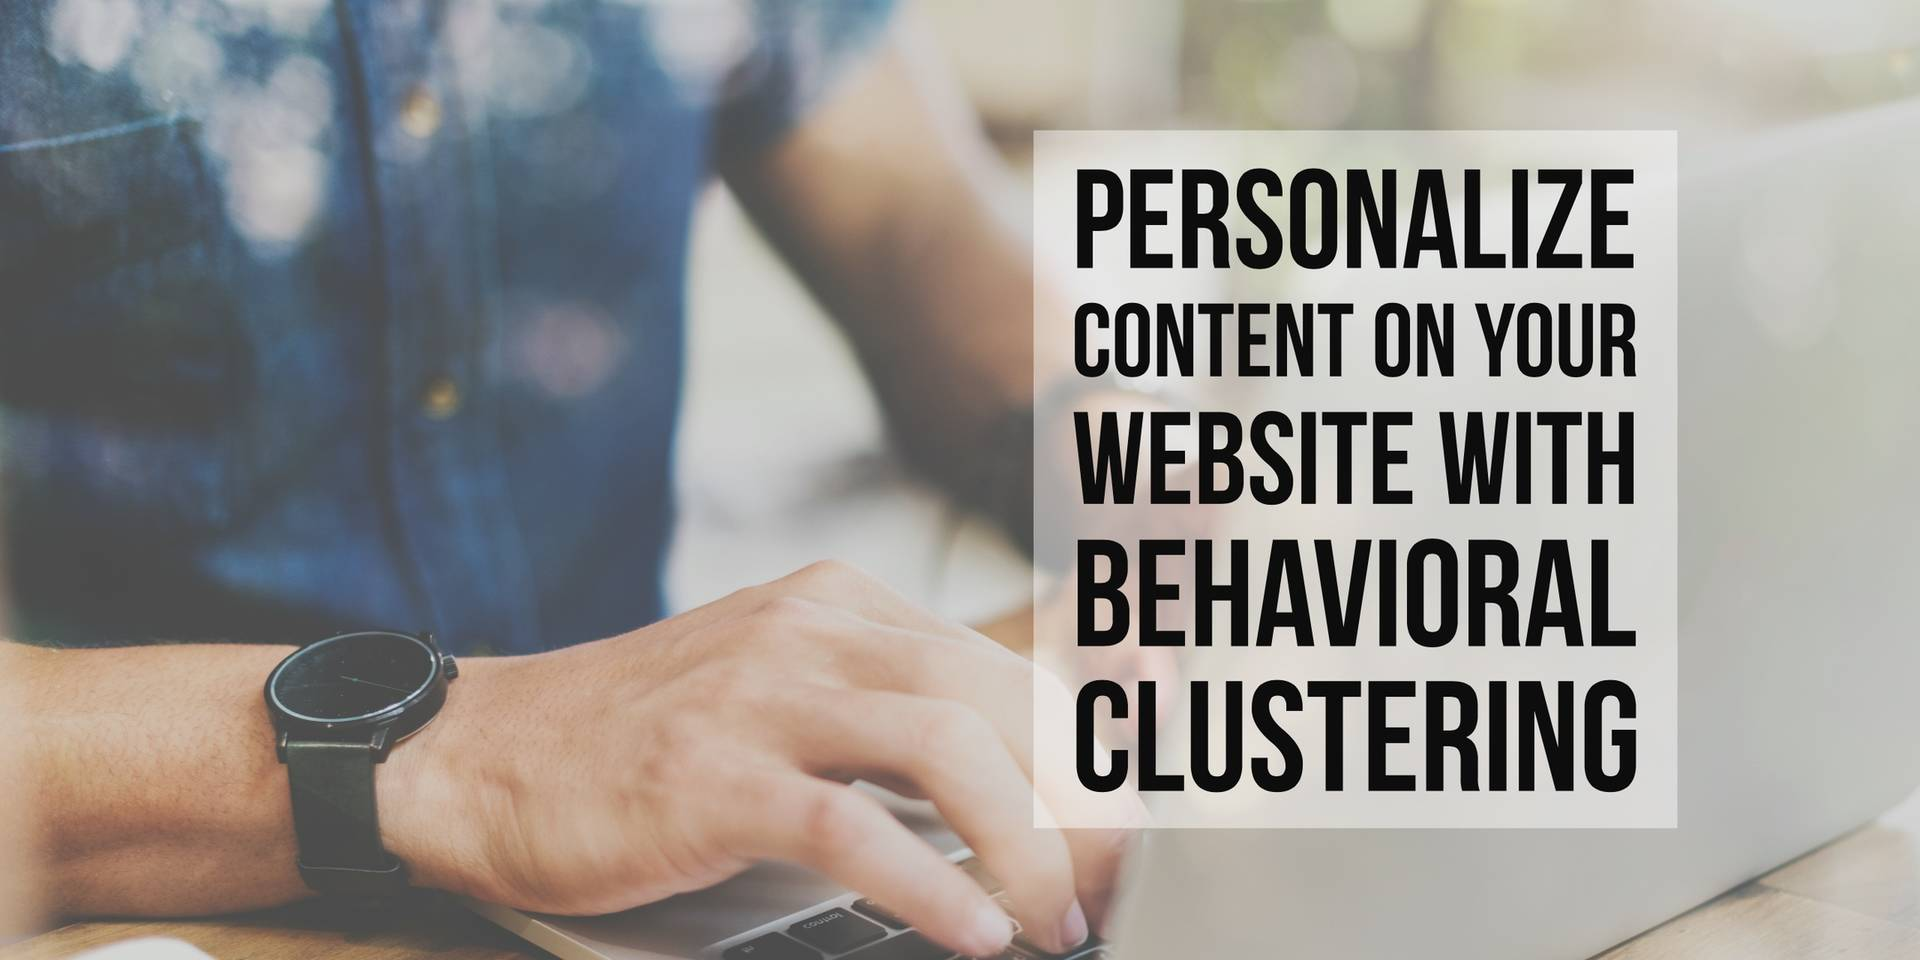 Personalize Content On Your Website With Behavioral Clustering